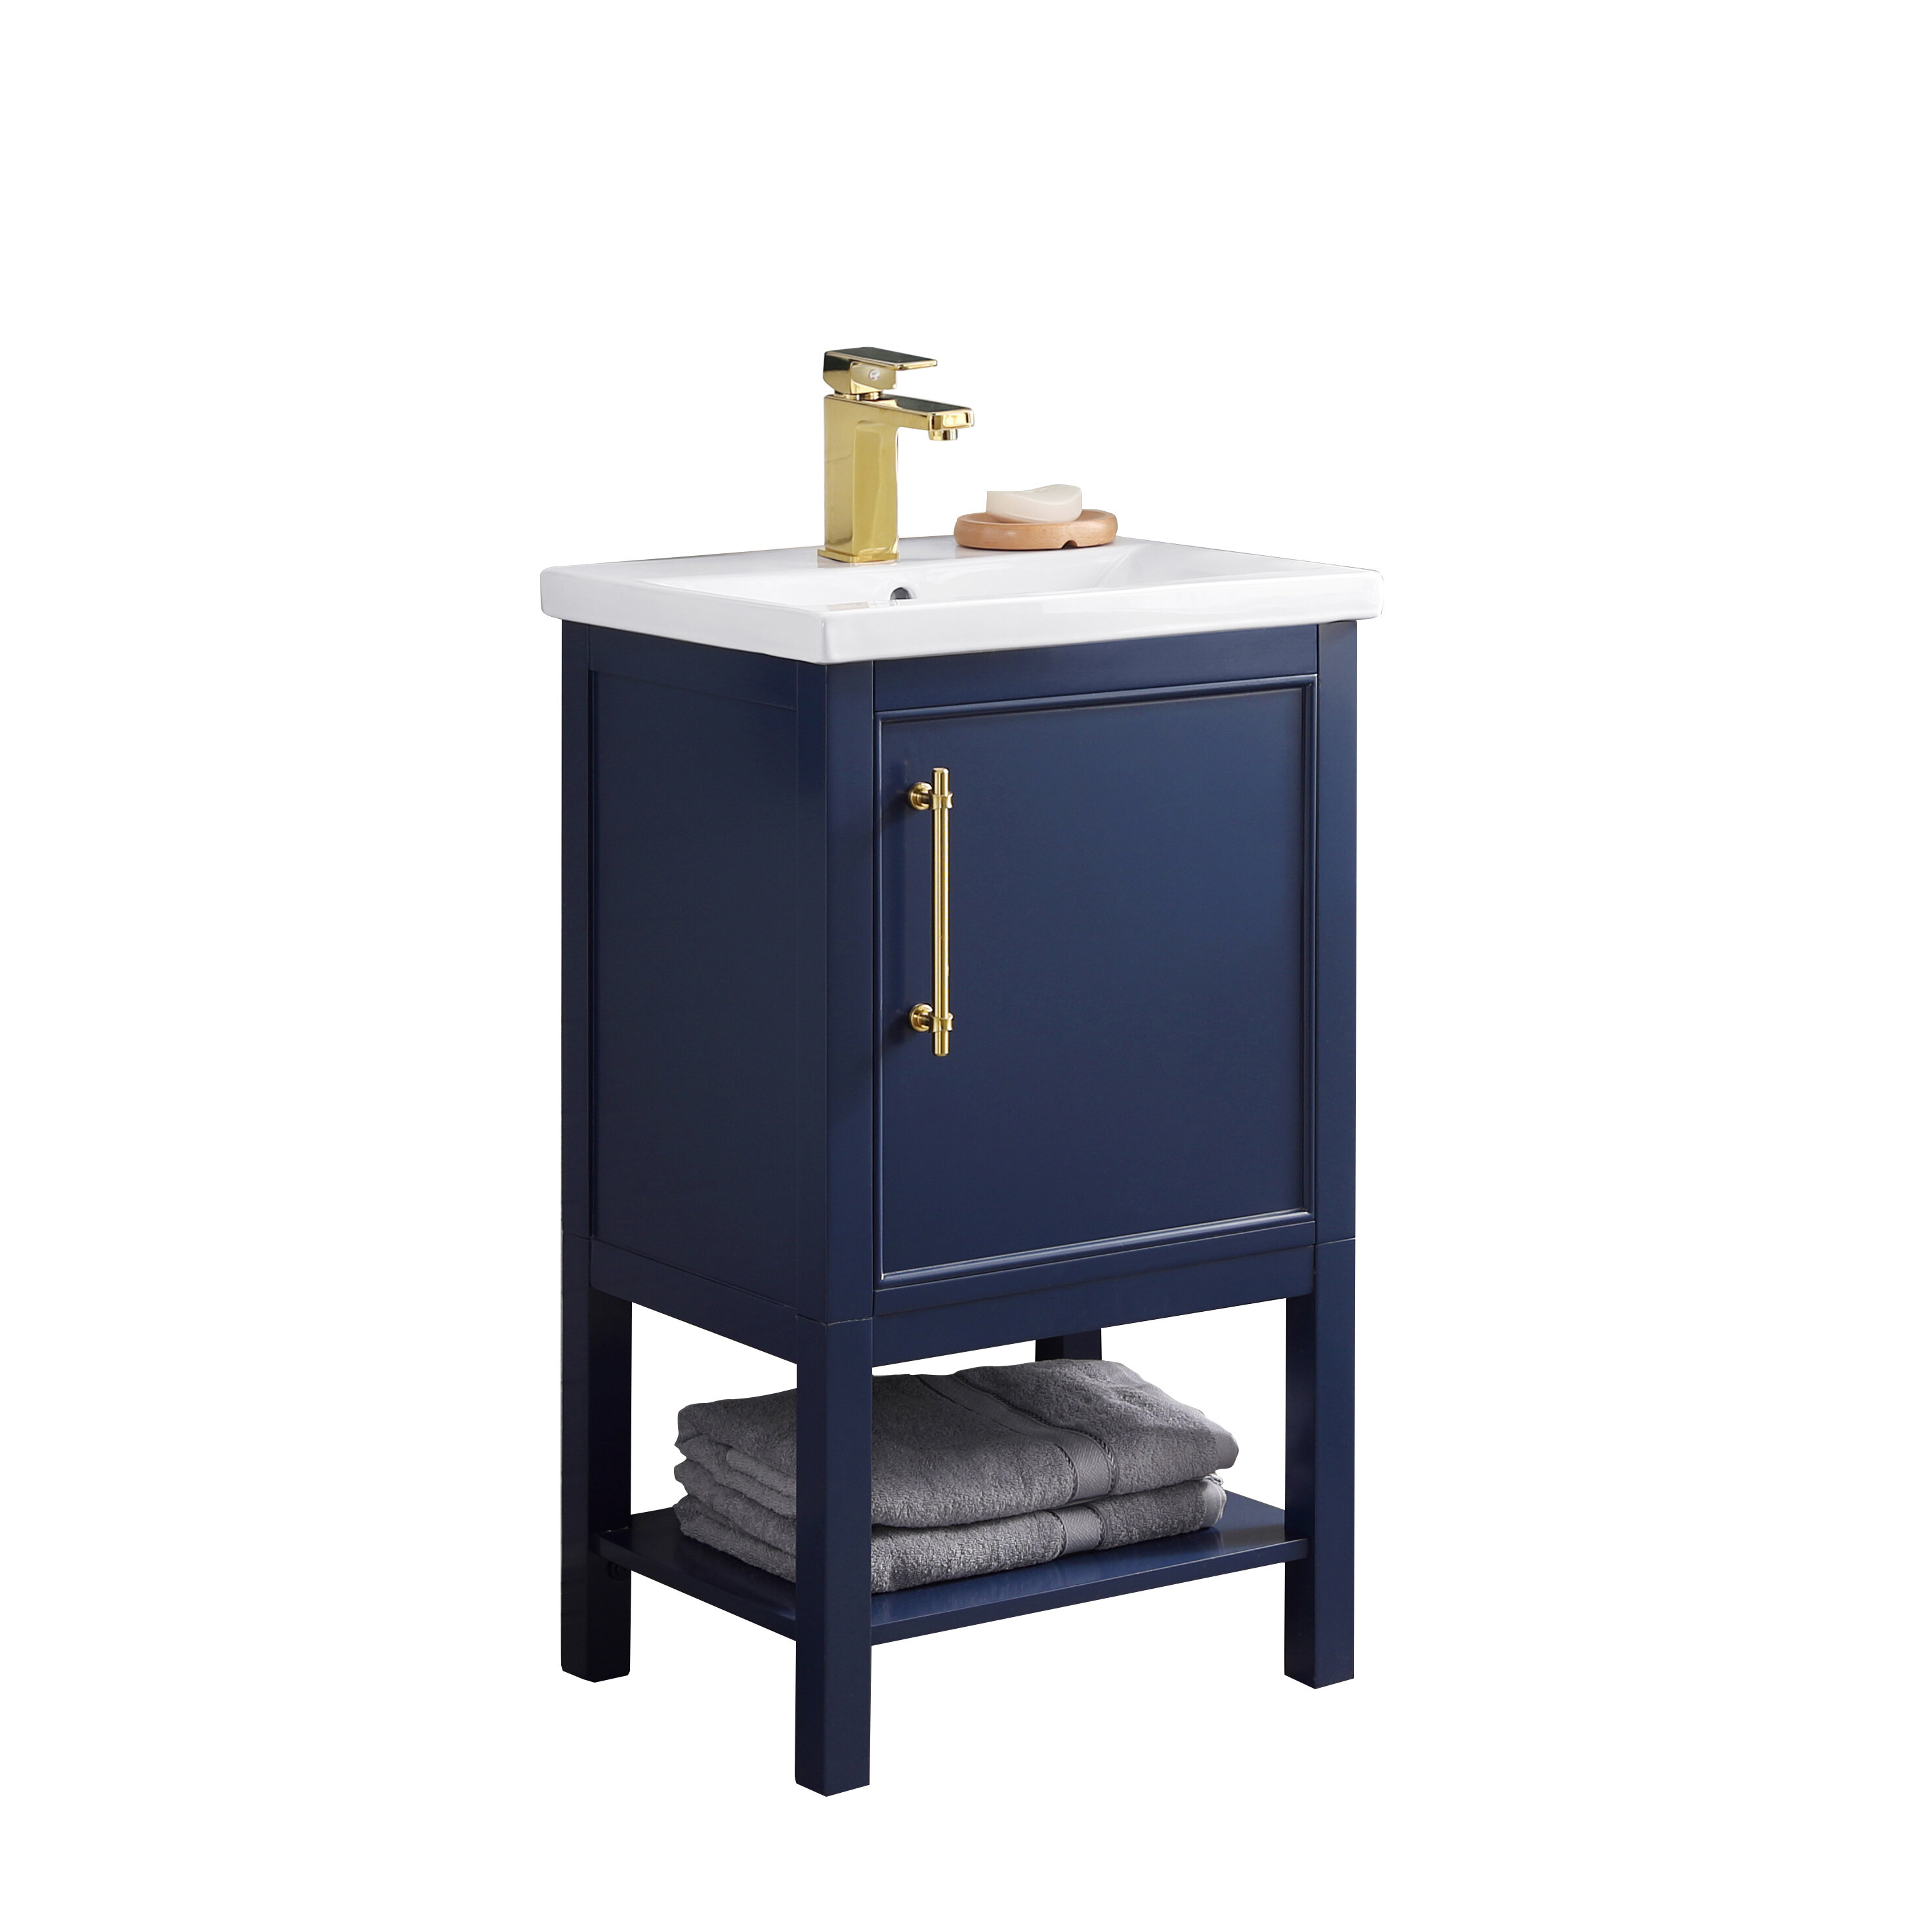 Mercer41 Briaca 20 Single Bathroom Vanity Reviews Wayfair